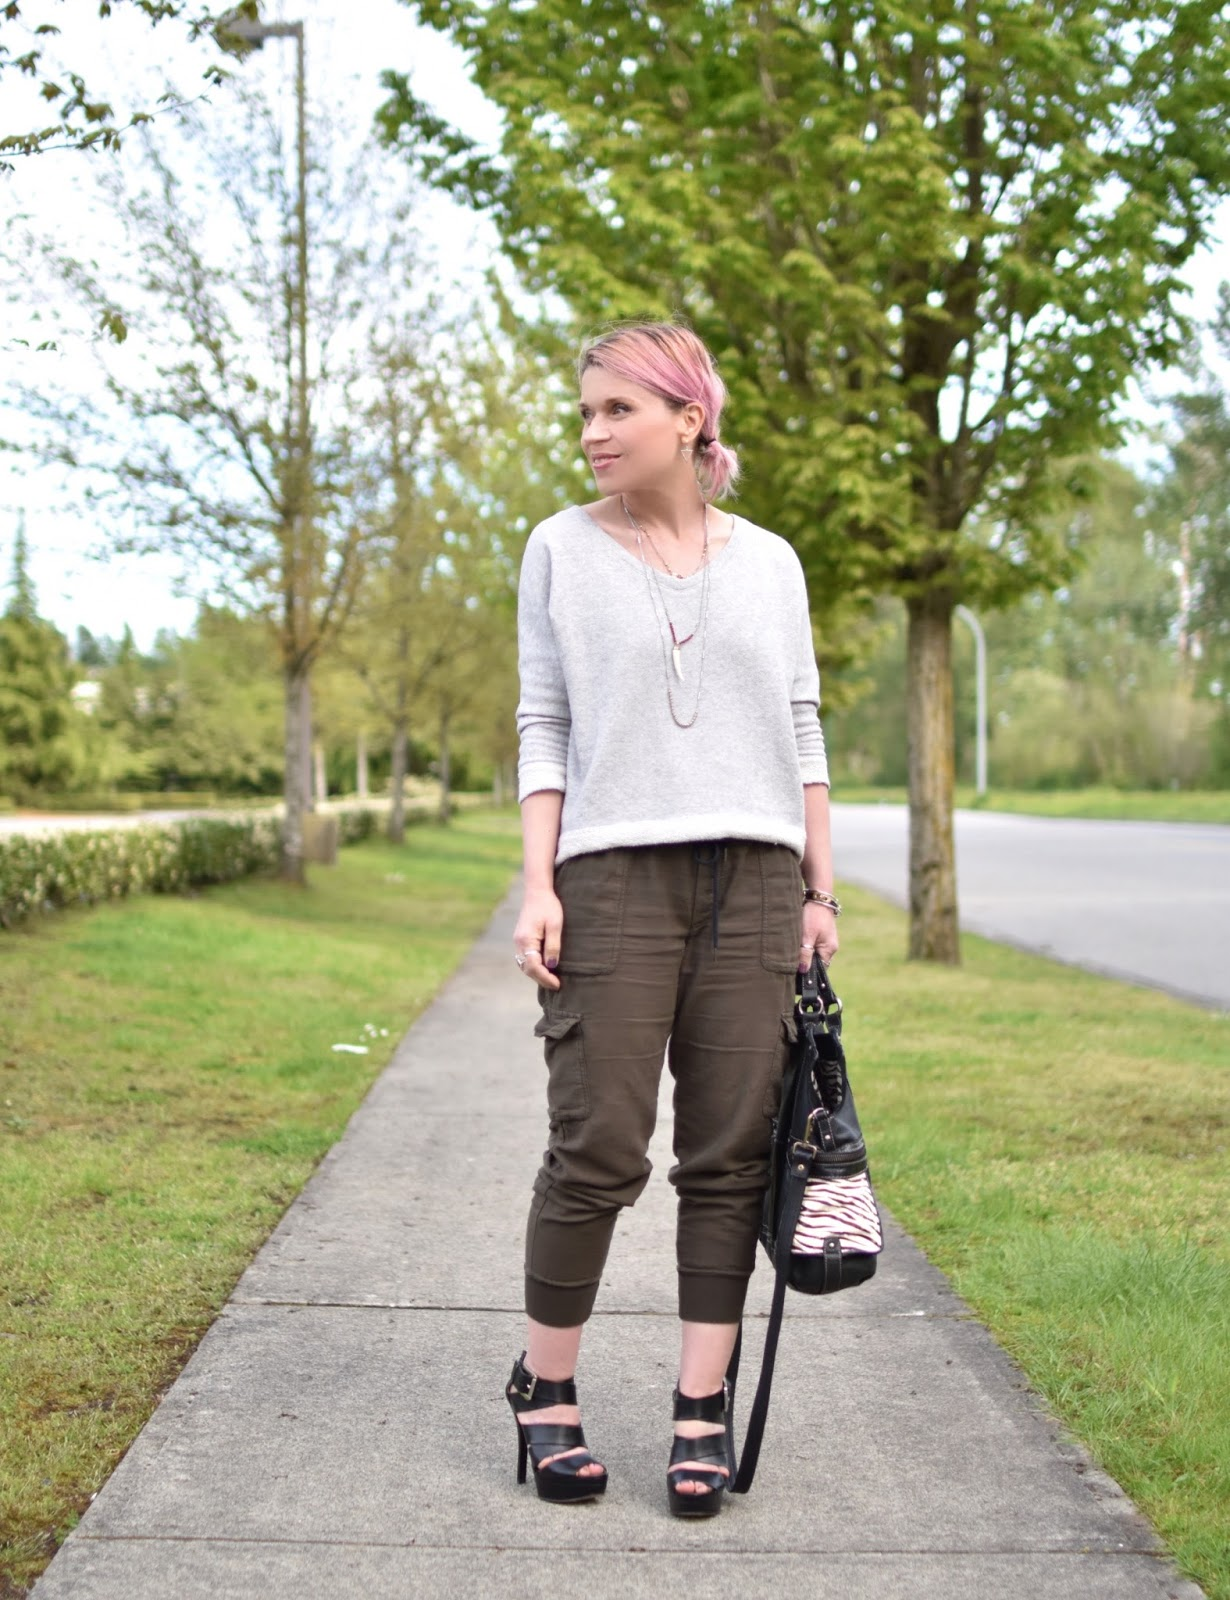 Monika Faulkner outfit inspiration - styling slouchy cargo pants with a sweatshirt and strappy platform sandals